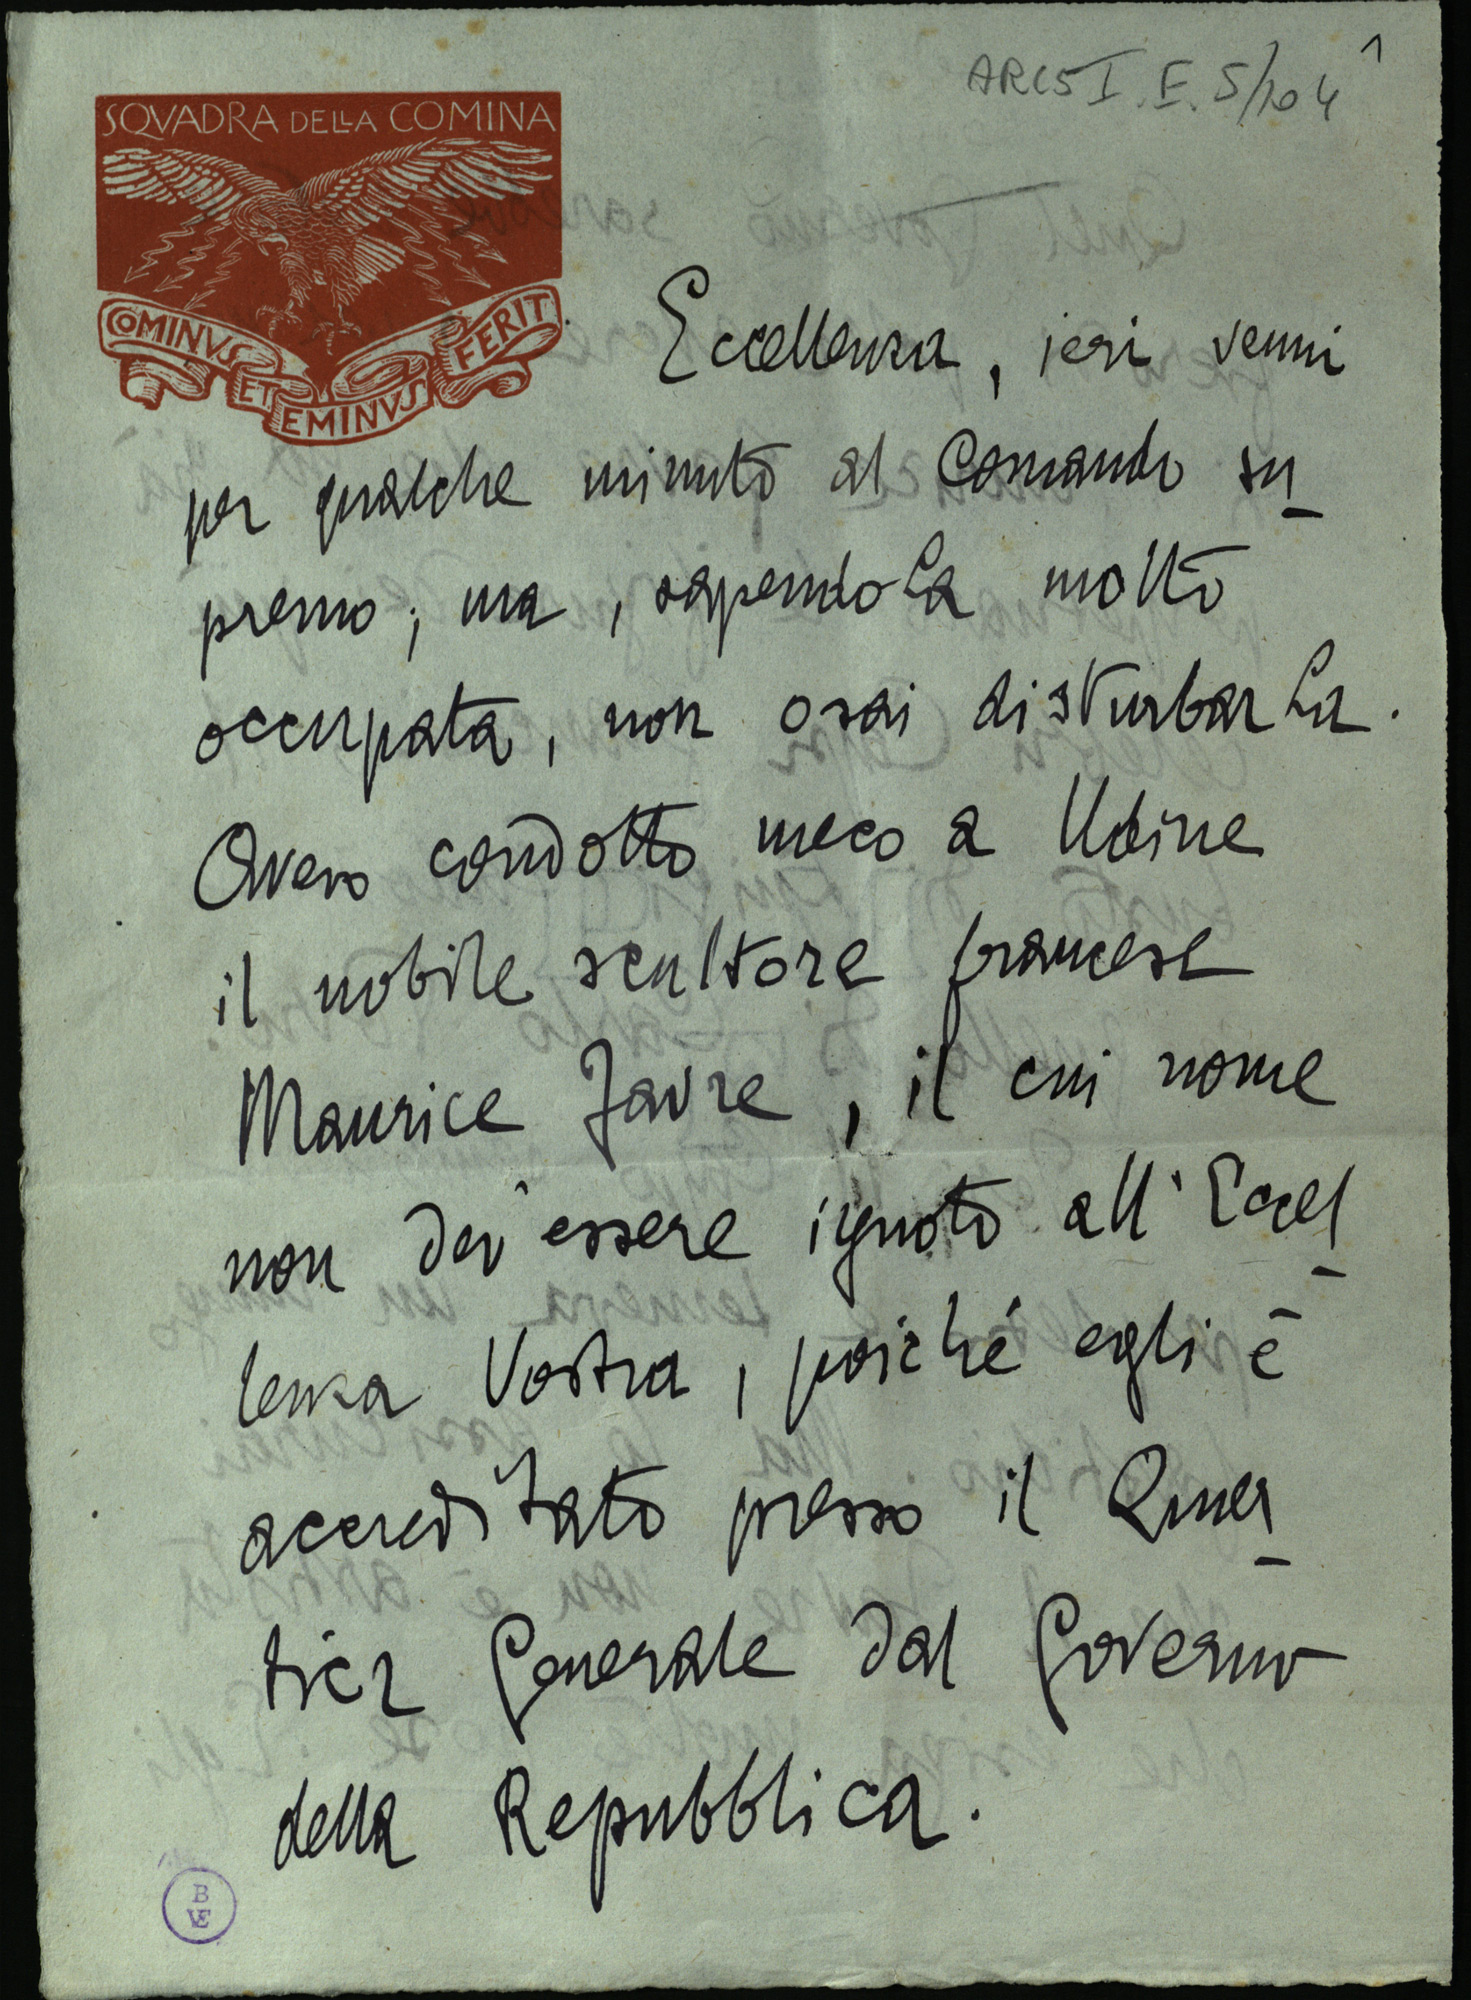 Letter from Gabriele D'Annunzio to Luigi Cadorna